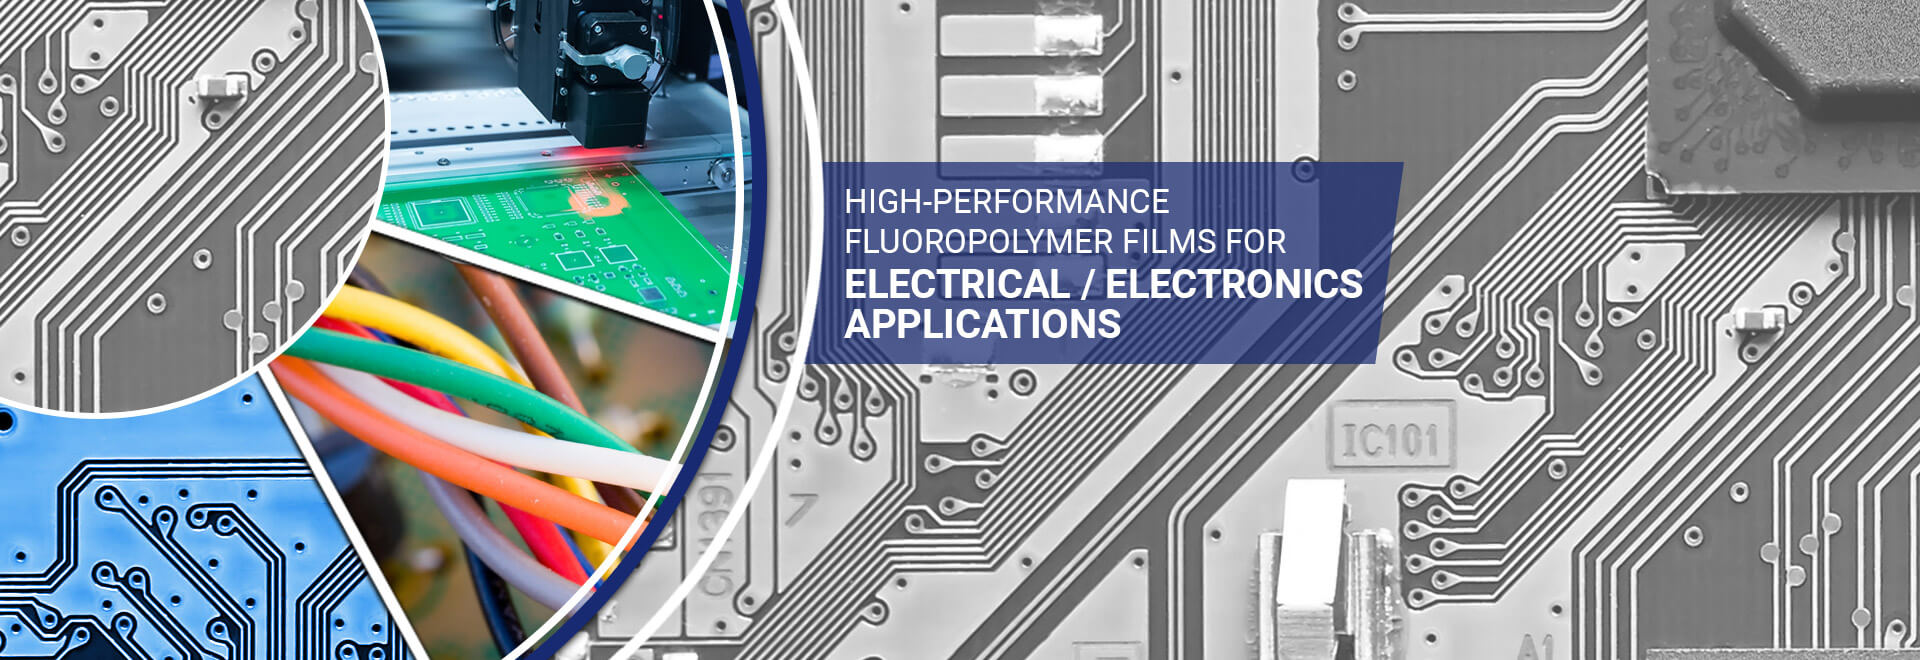 FEP, PFA, ETFE, cast PTFE film, fluoropolymer films, high performance fluoropolymer films, fep film, pfa film, etfe film, semiconductor, dielectric properties, circuit board, film assisted molding, integrated circuits